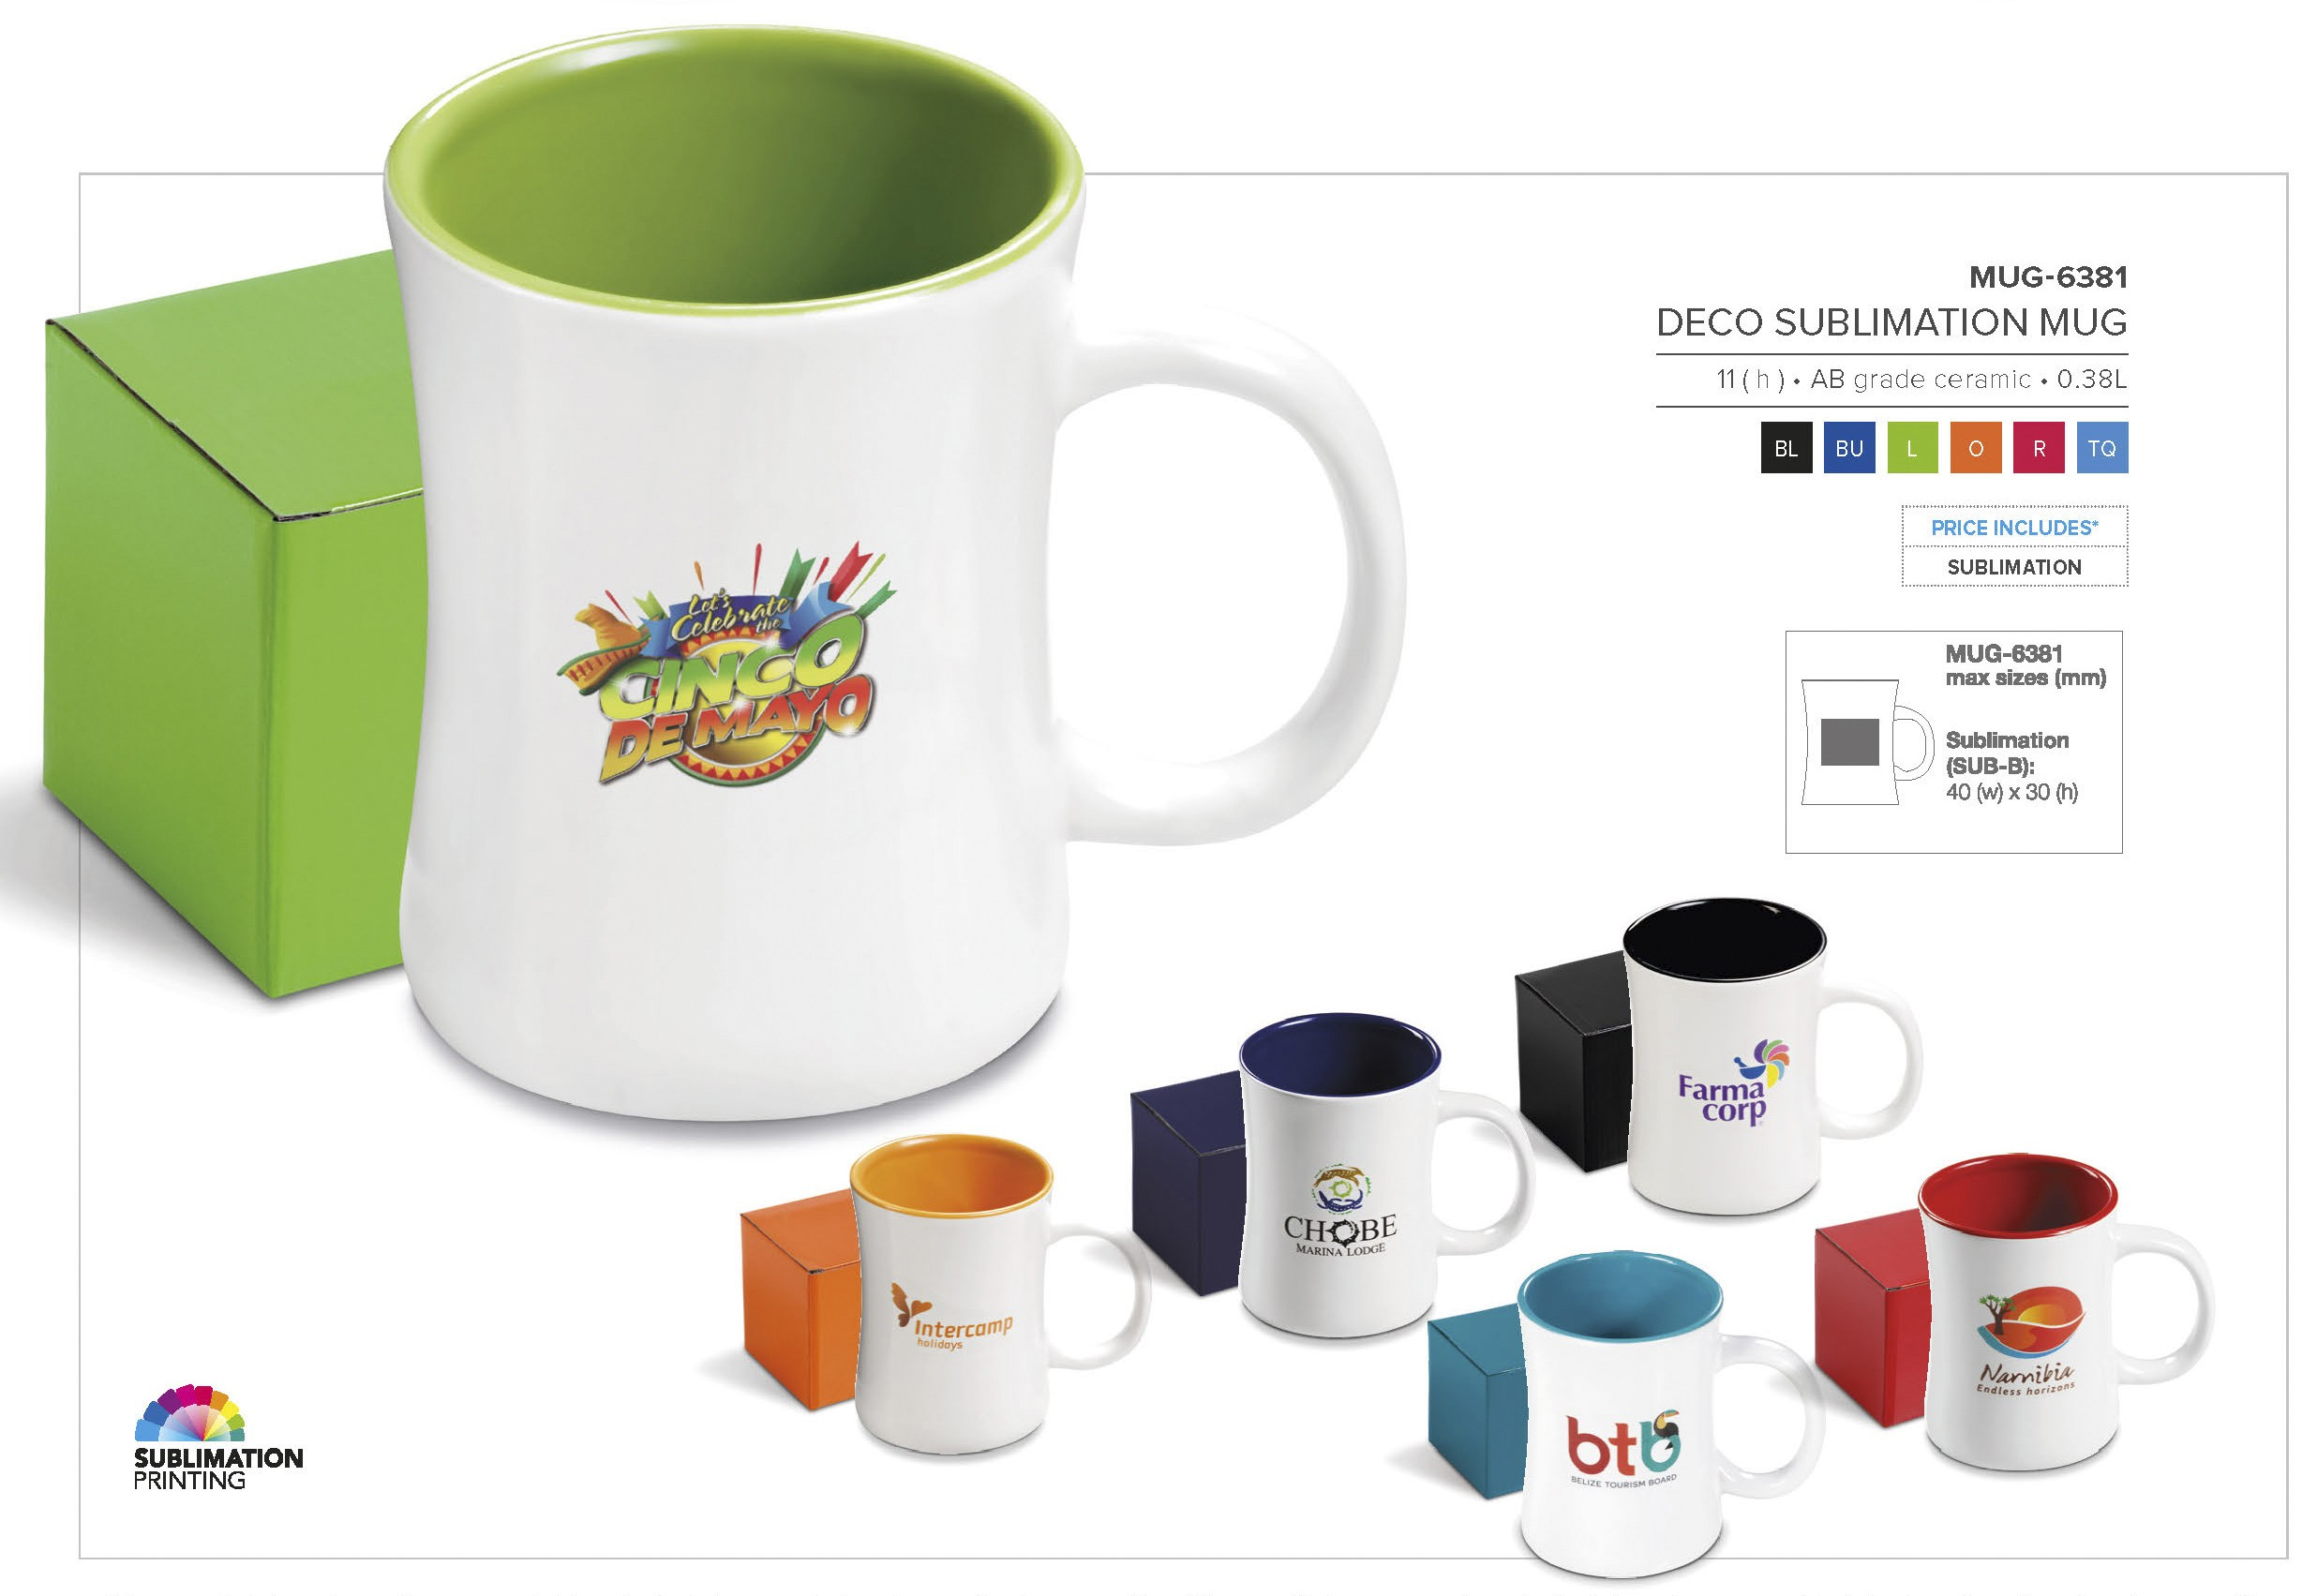 Deco Mug Deco Sublimation Mug 380ml Mug 6381